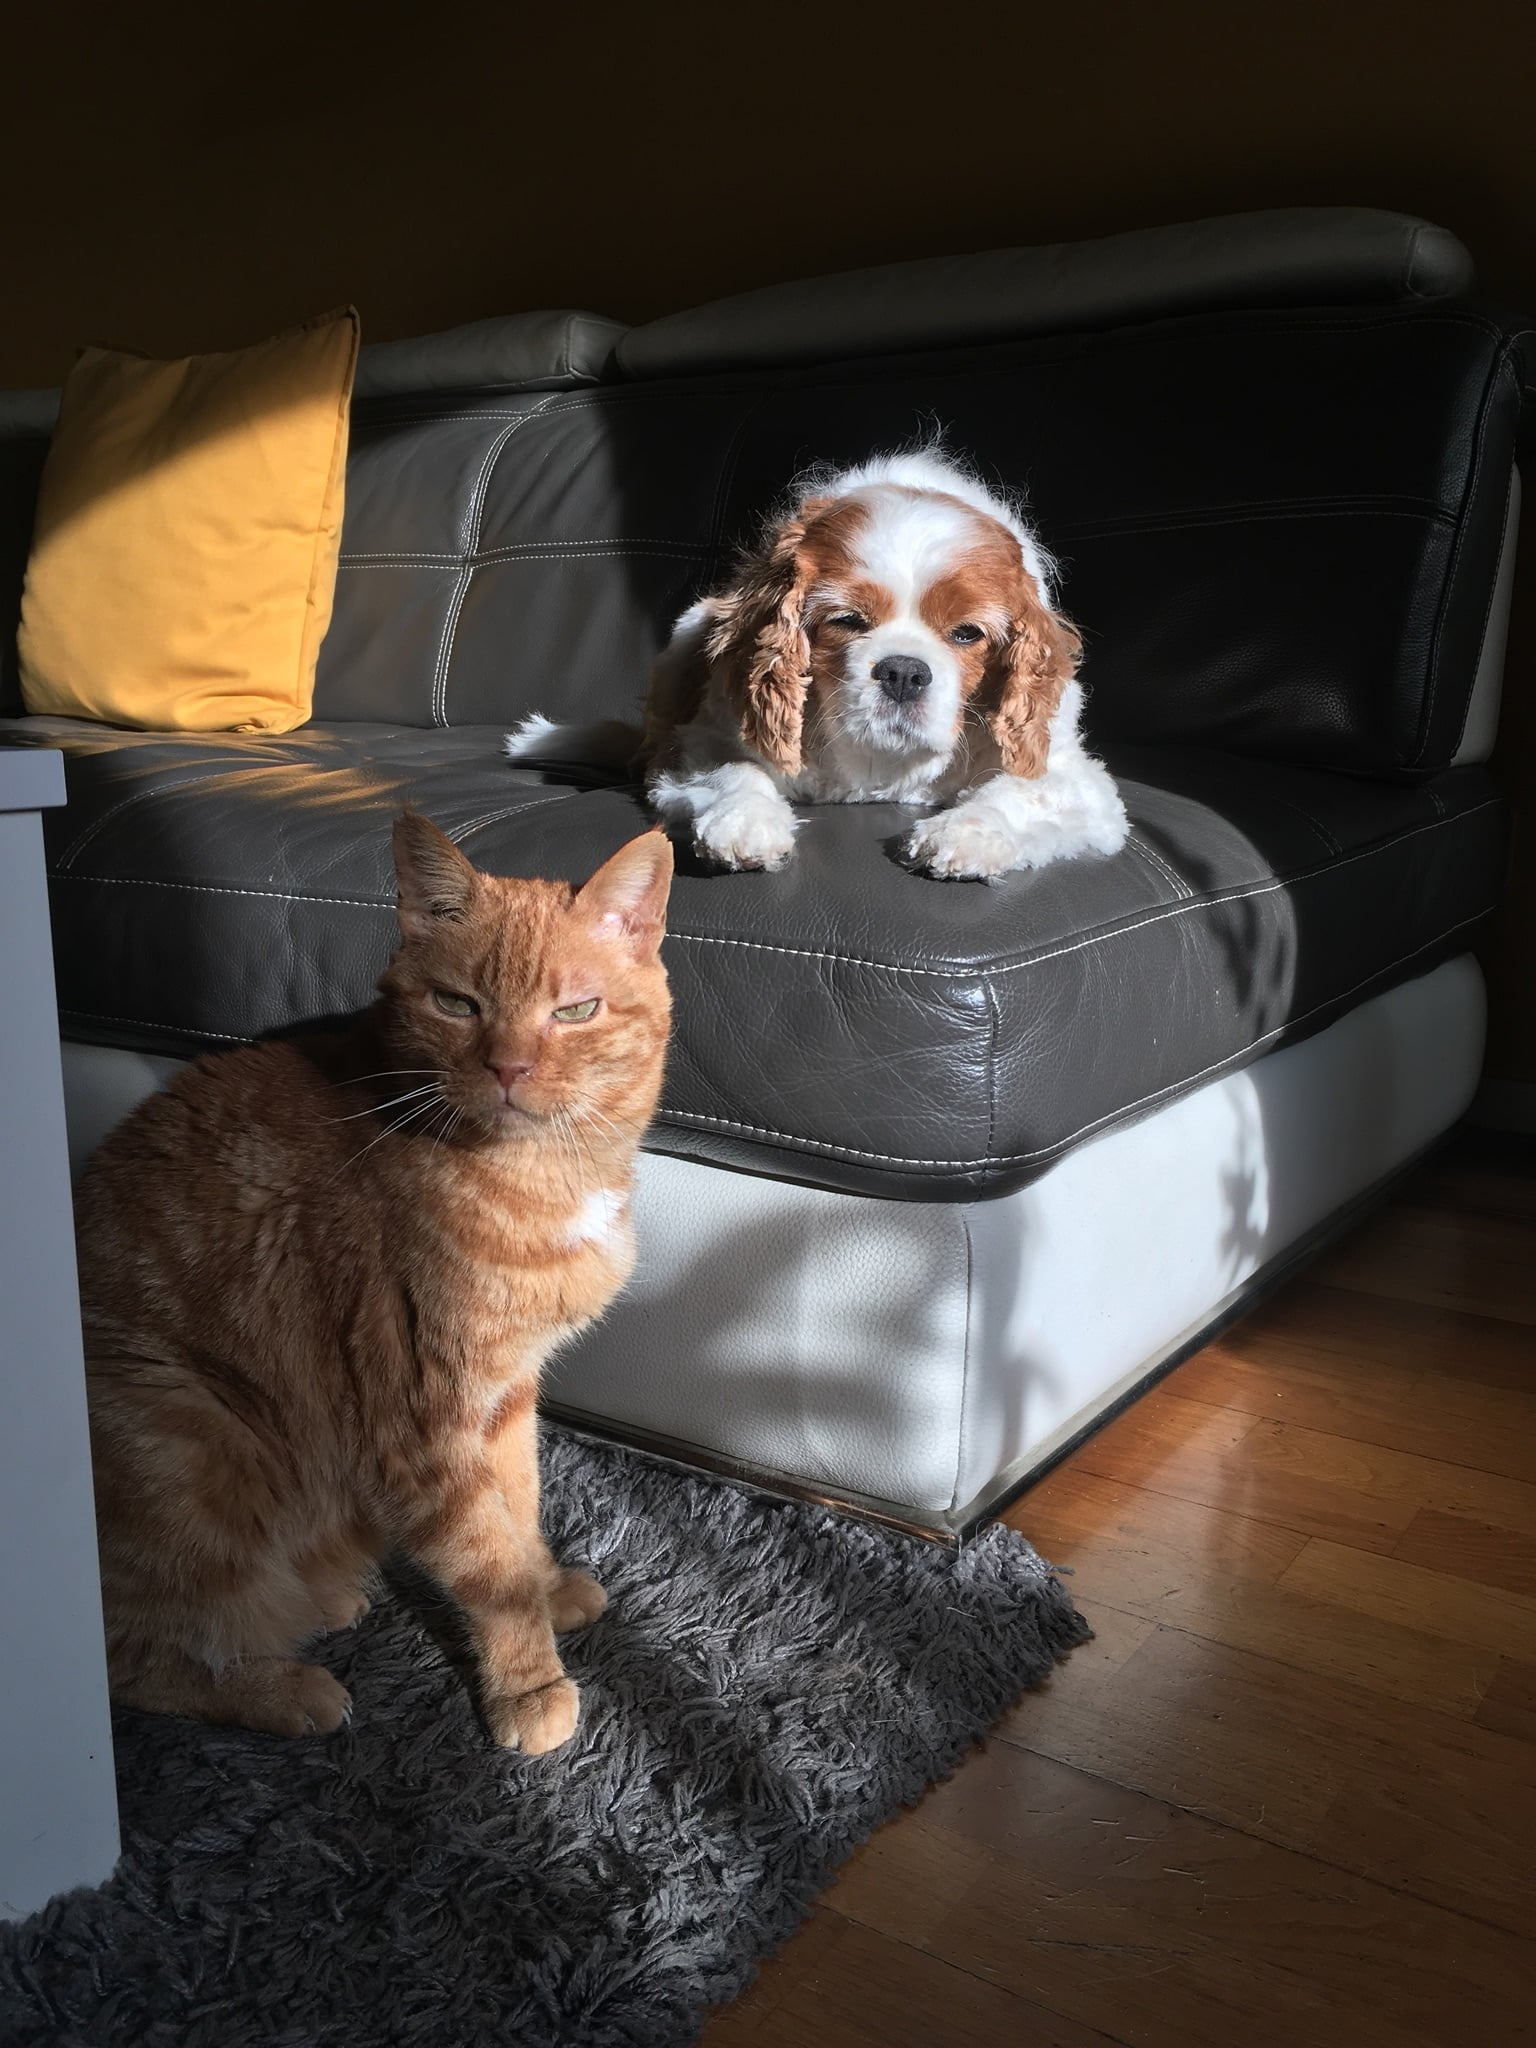 Le chat roux, Garfield